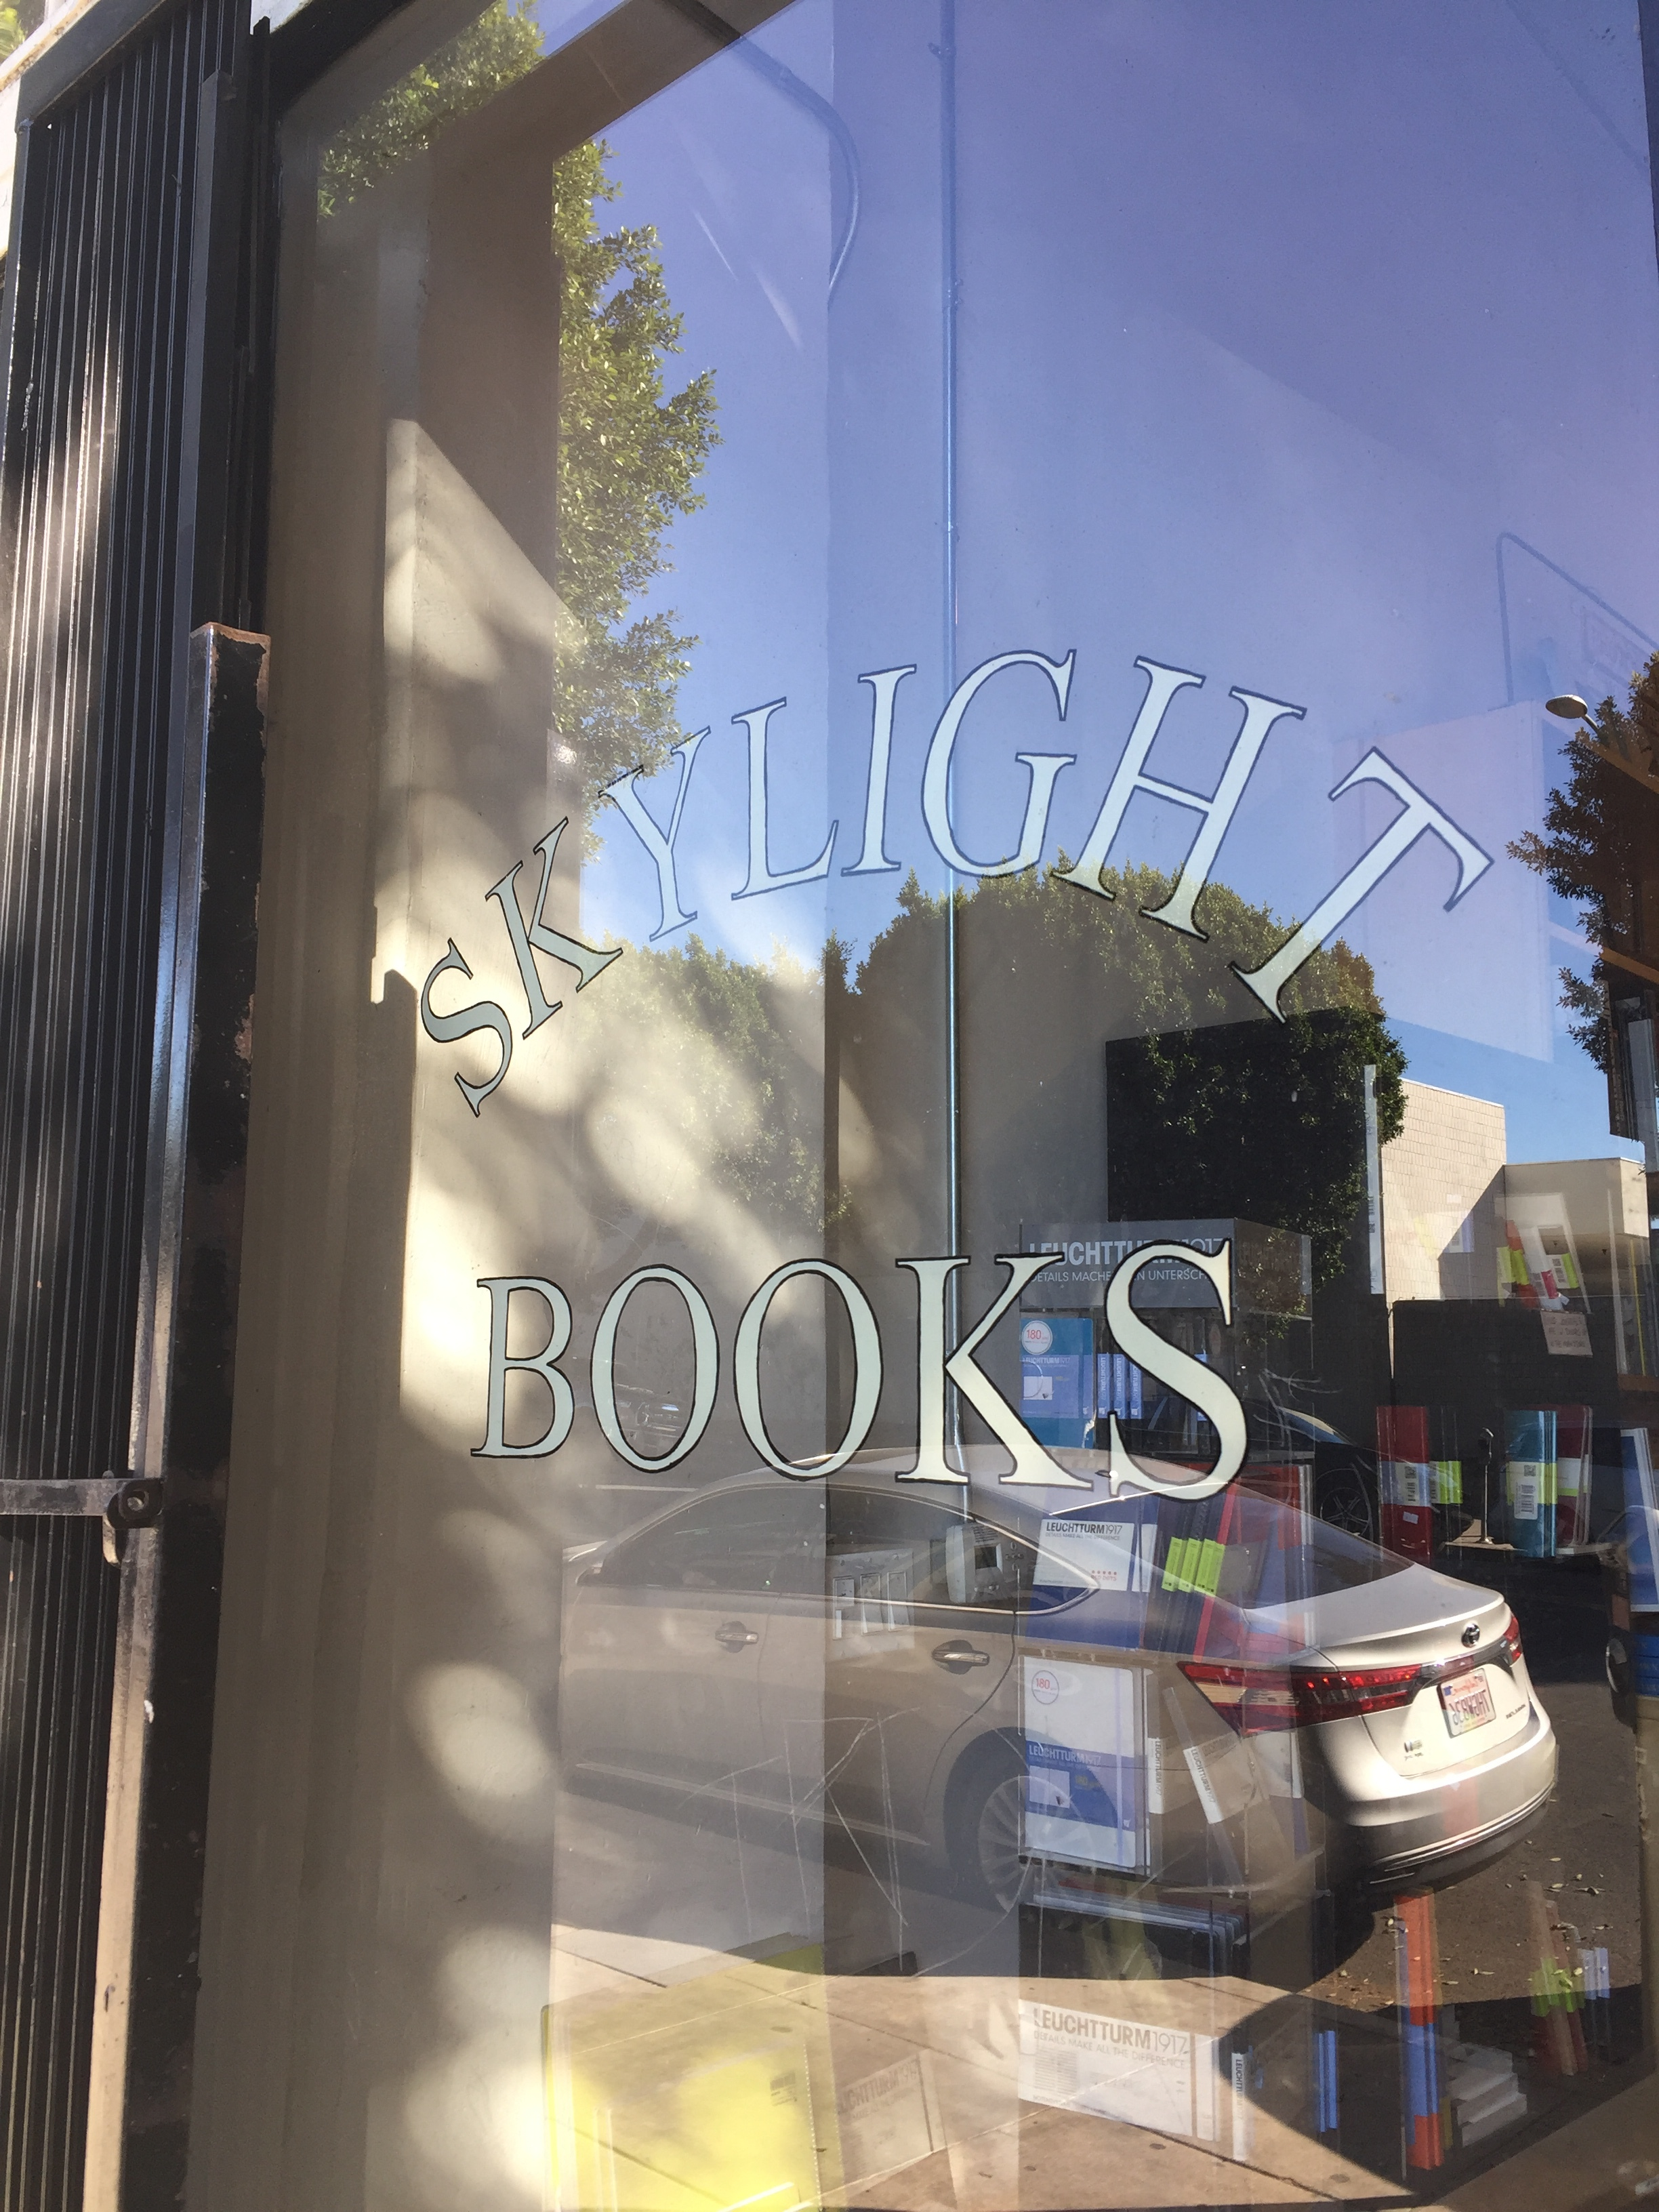 [image description: An up close look at one of the shop windows of Skylight Books. The store's name is painted in a cream color and outlined in black on the window. There's a car parked in front of the store that's reflected in the window.]